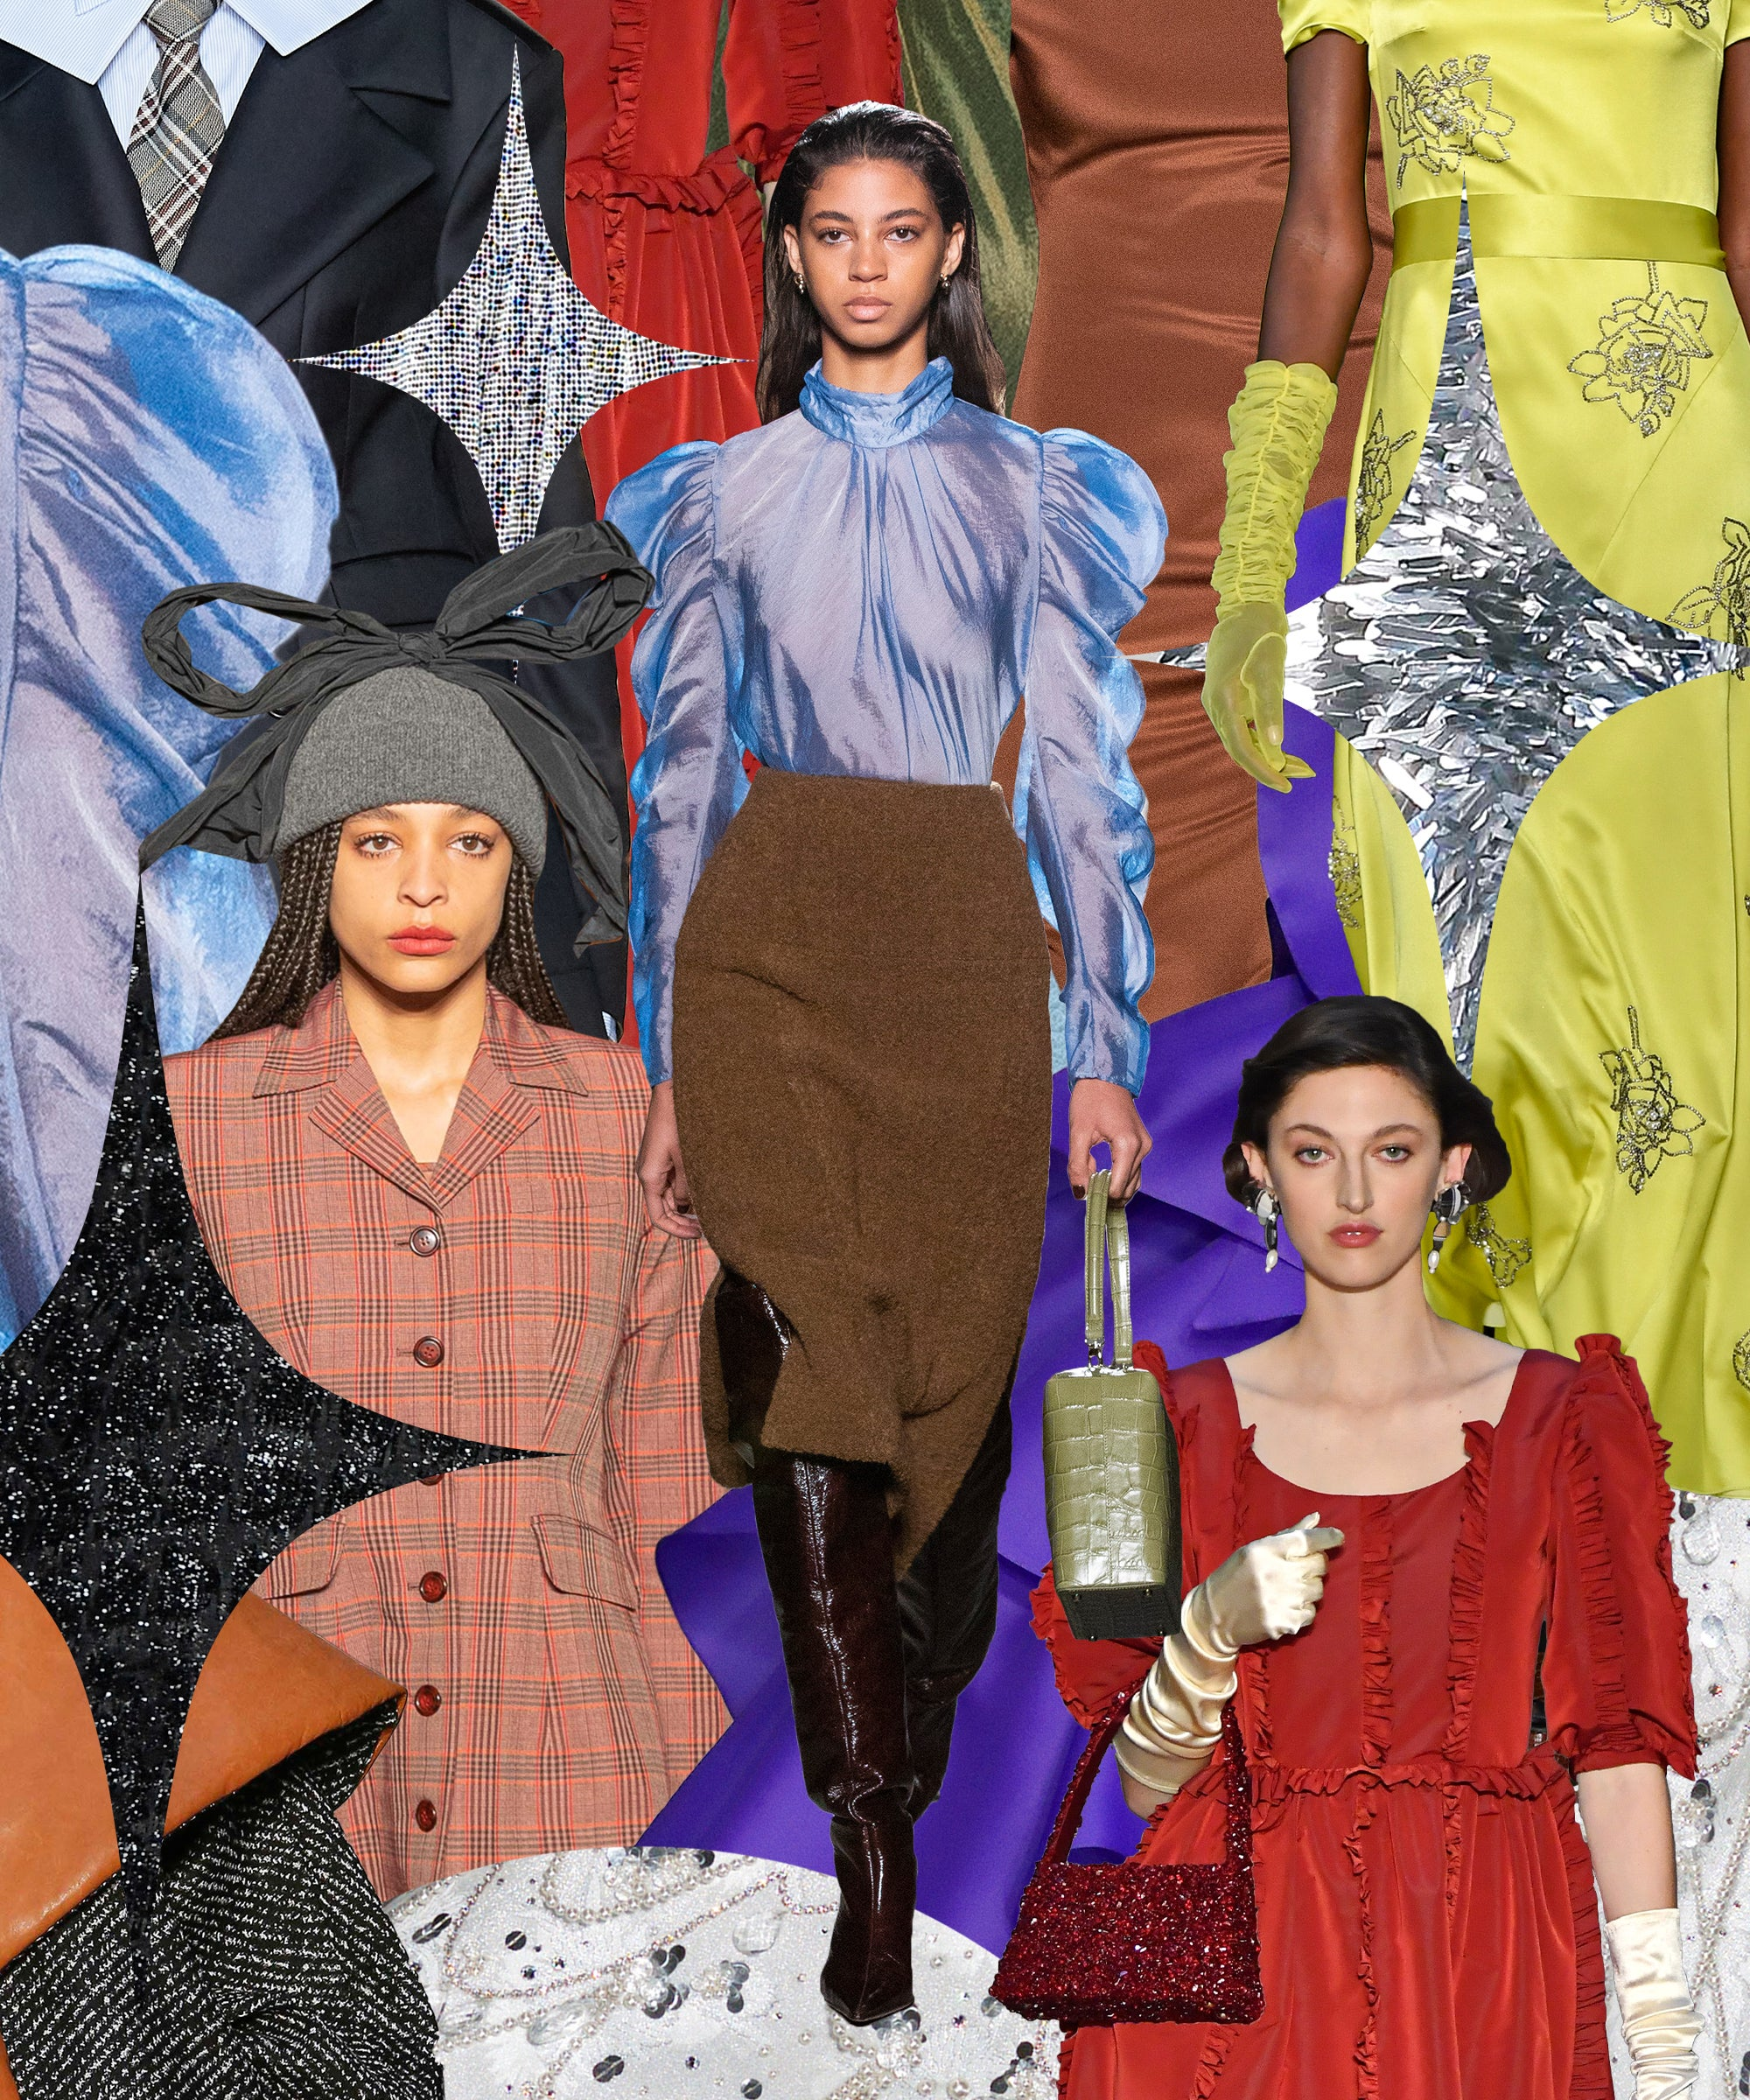 London Fashion Week Trends From Fall Winter 2020